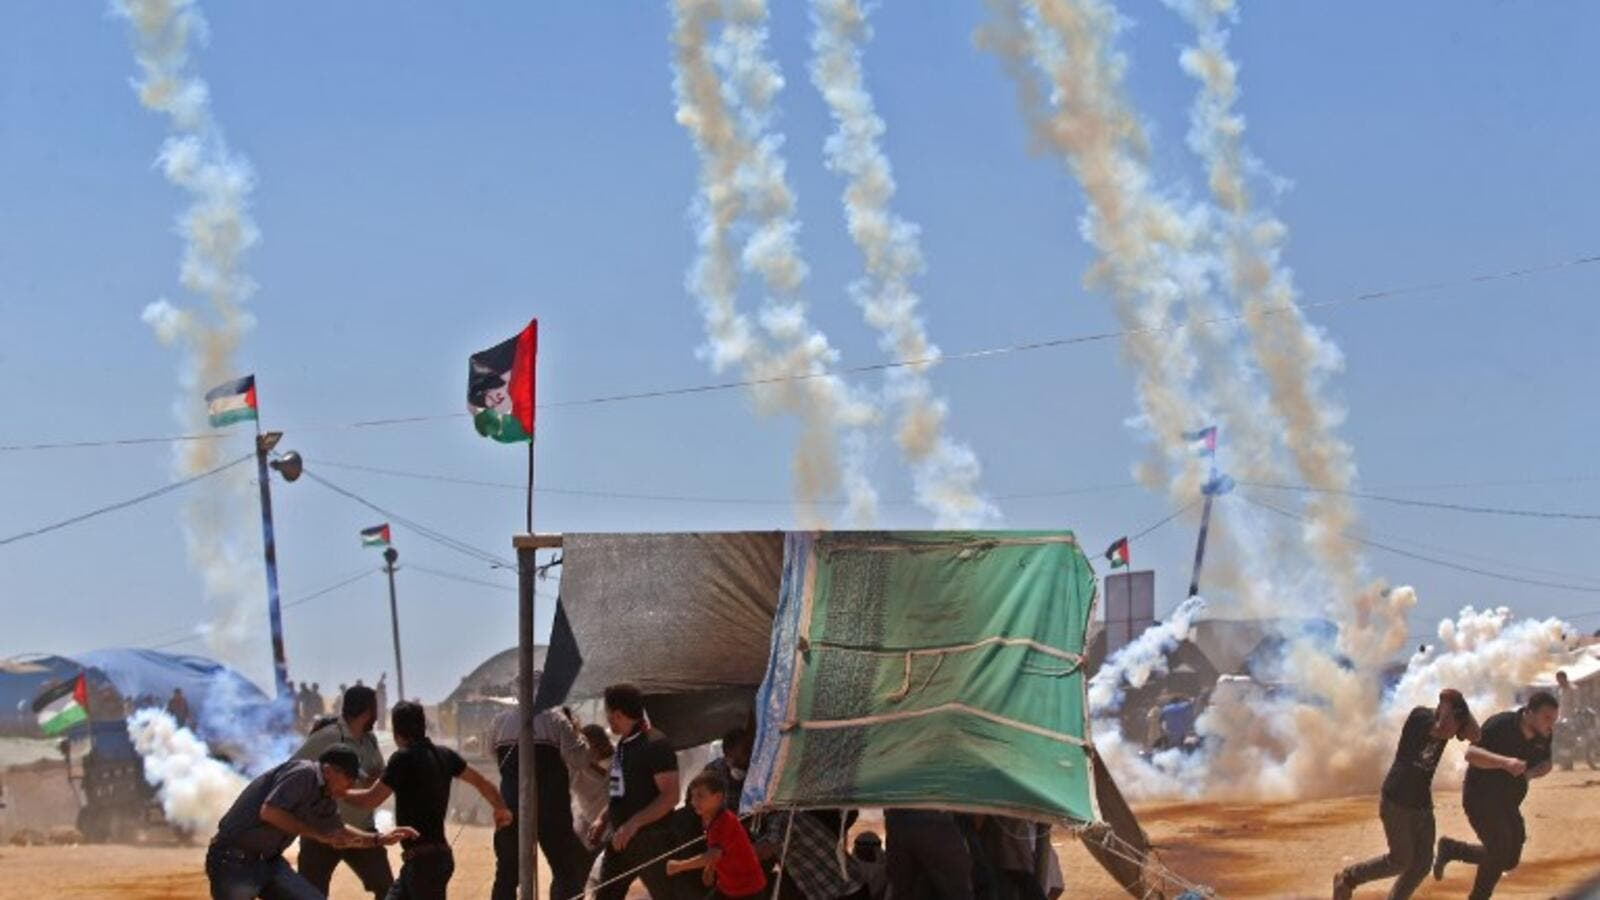 Palestinians run for cover from tear gas near the border between Israel and the Gaza Strip, east of Jabalia. (Mohammed ABED/ AFP)